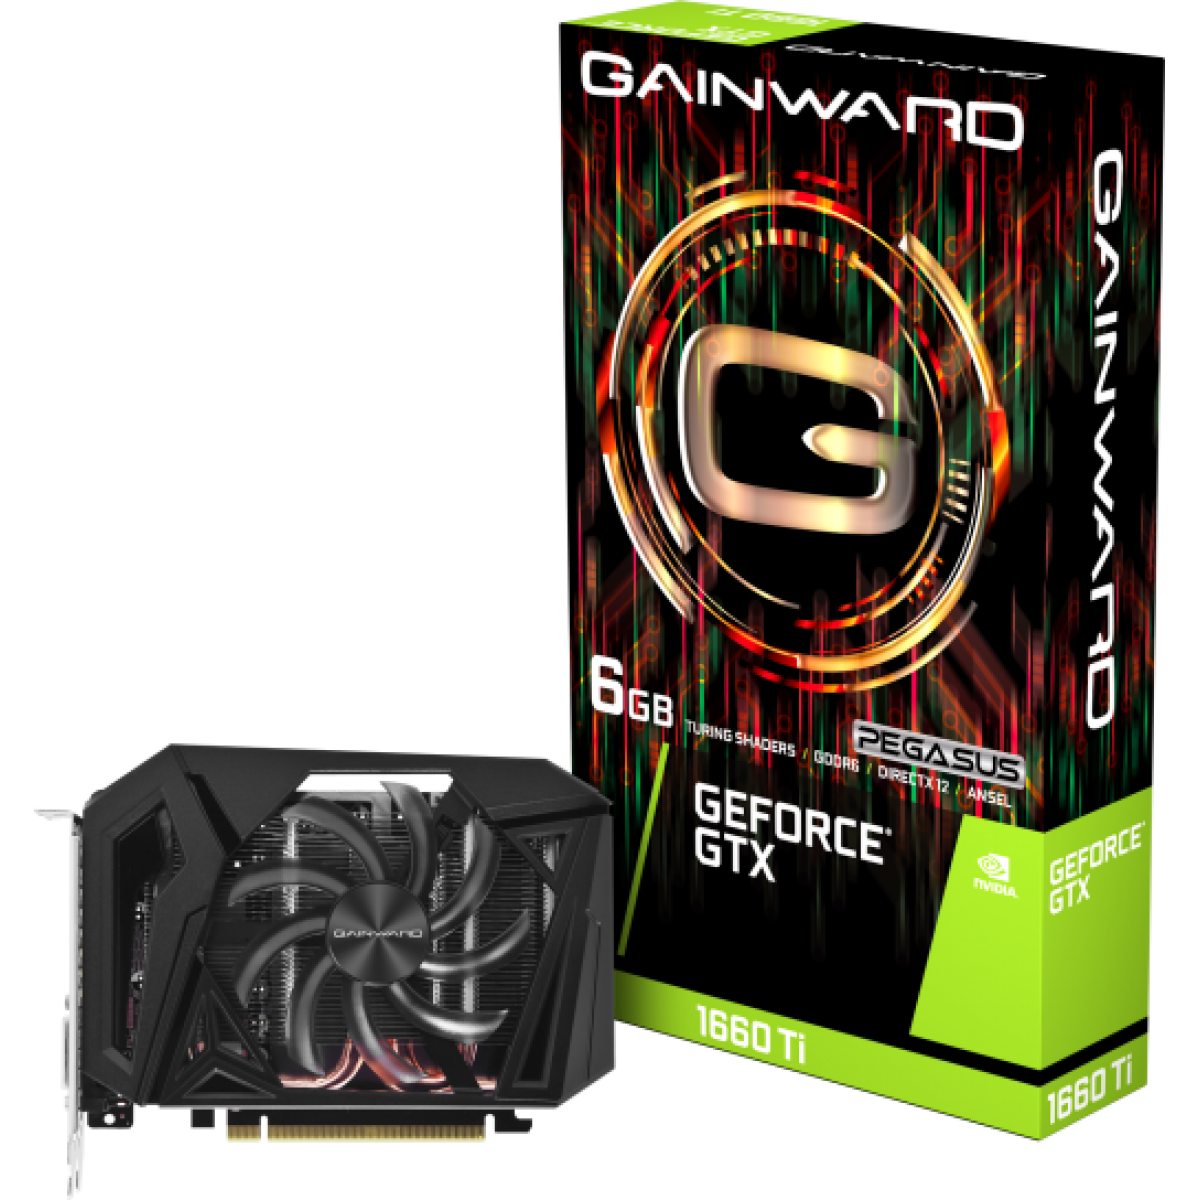 Placa de Vídeo Gainward GeForce GTX 1660 Ti Pegasus, 6GB GDDR6, 192Bit